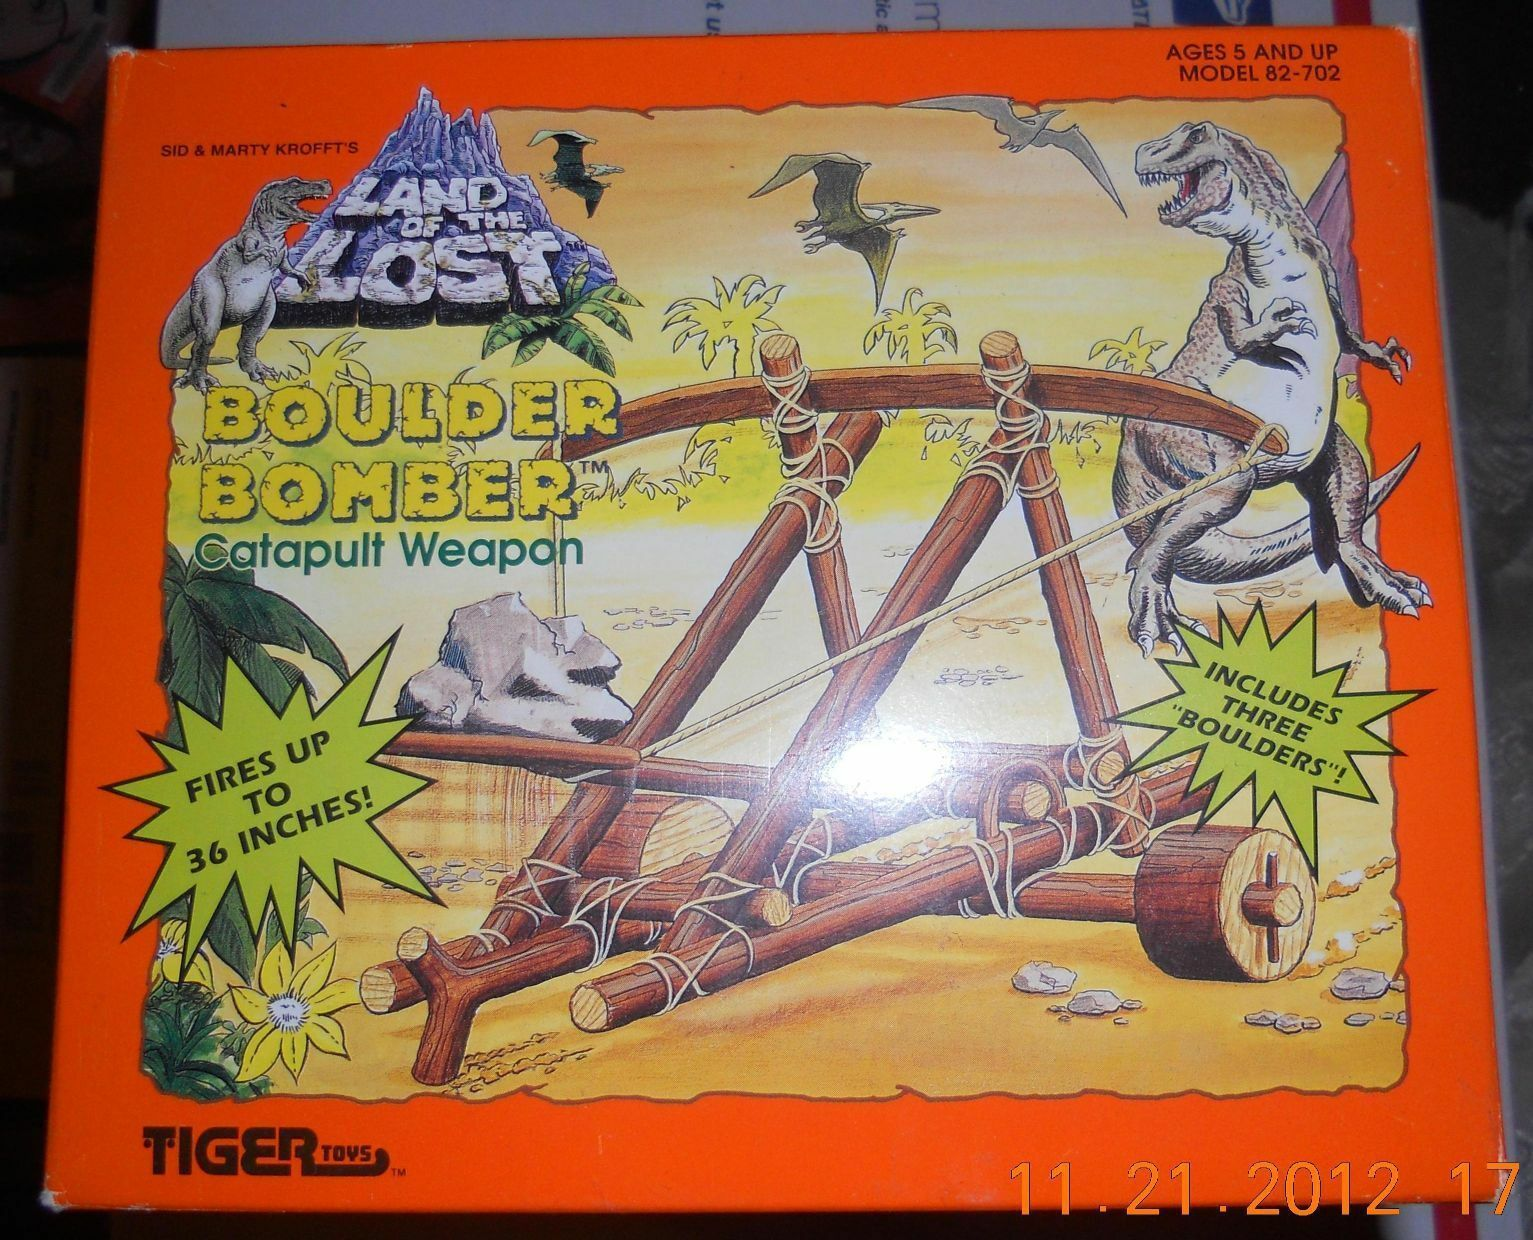 1992 Tiger Toys Sid & Marty Krofft Land of the Lost Boulder Bomber RARE